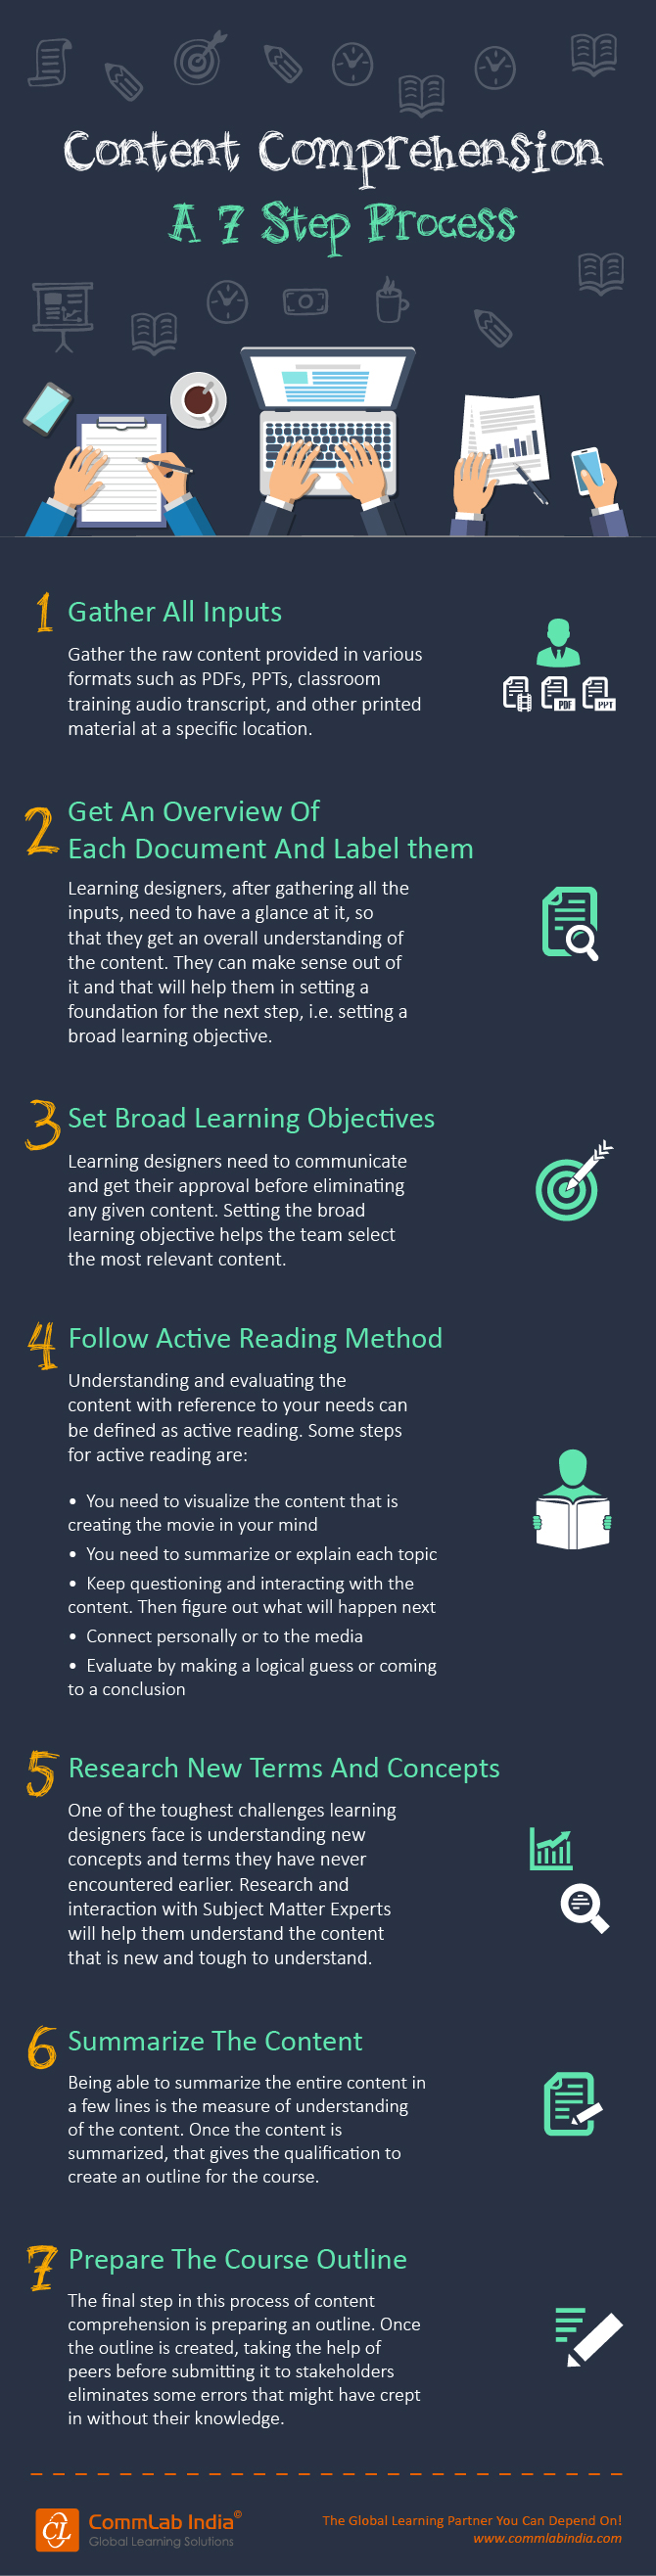 7 Step Process of Content Comprehension in E-learning [Infographic]